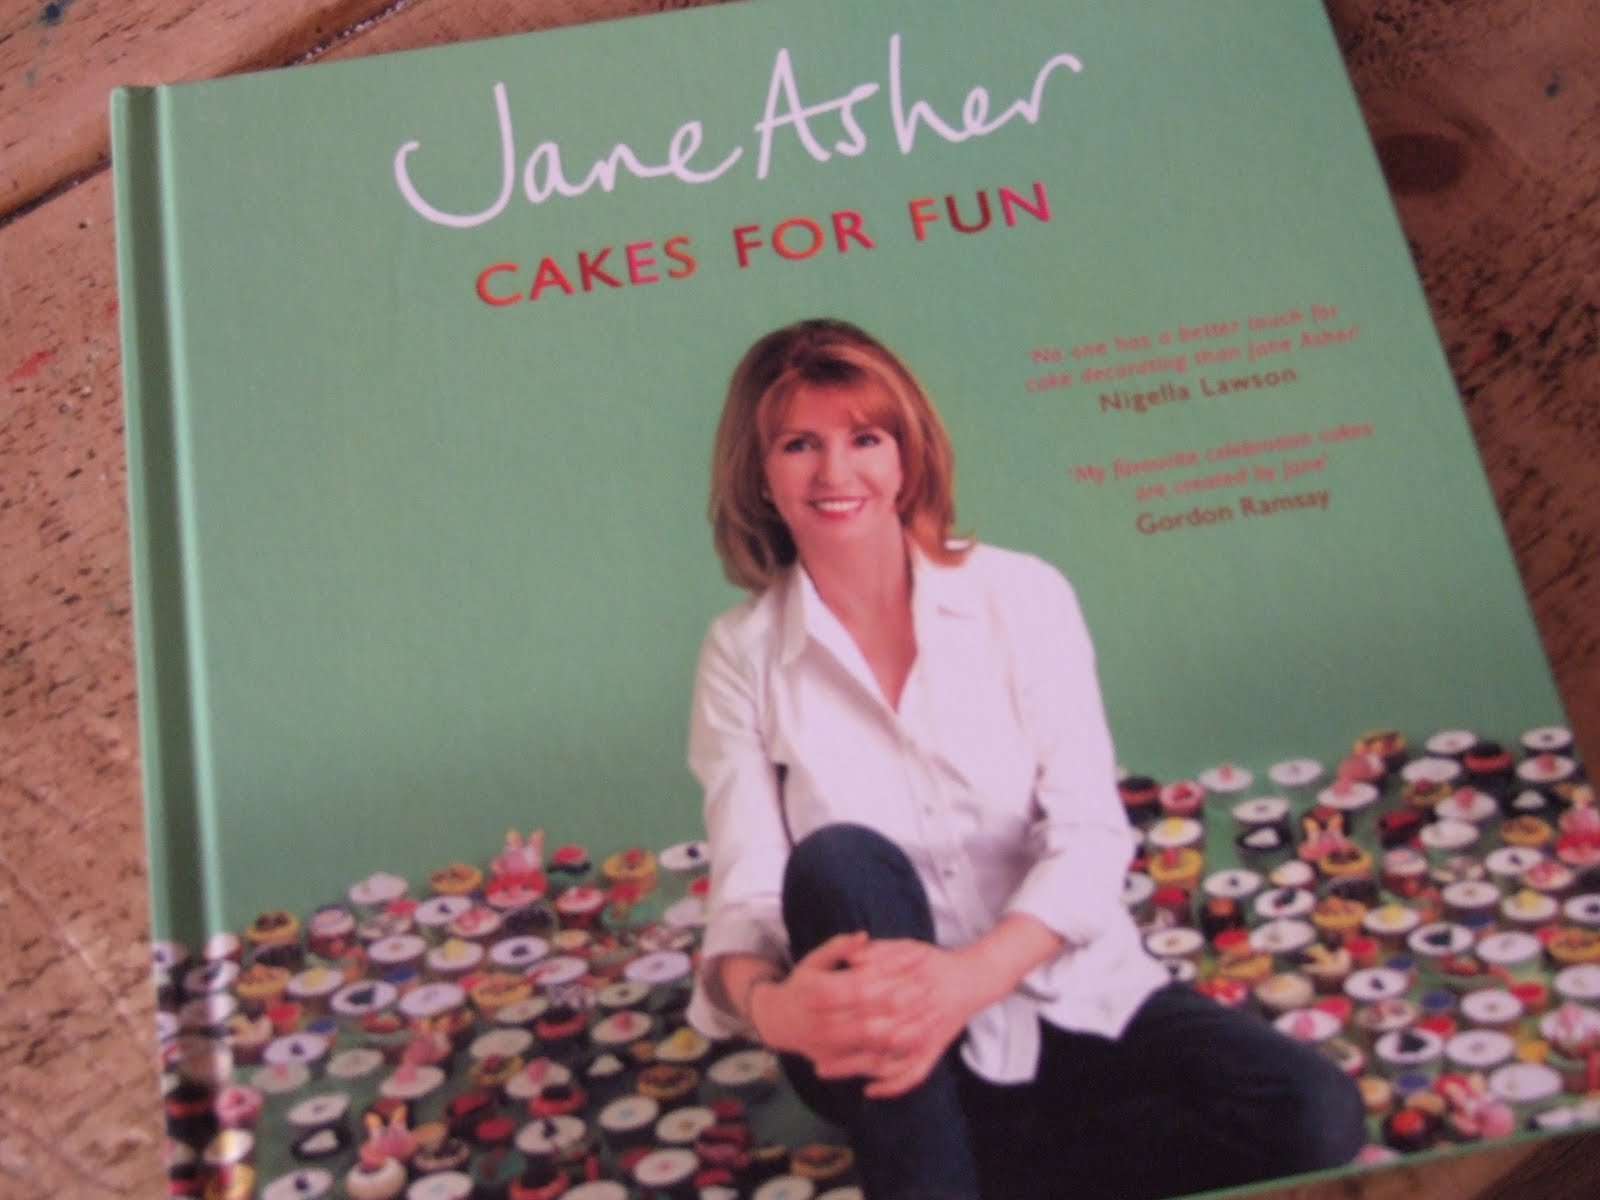 Jane Asher Cake Decorating Books : THE CUPCAKE QUEEN: Signed Copy of Jane Asher Cake Book ...